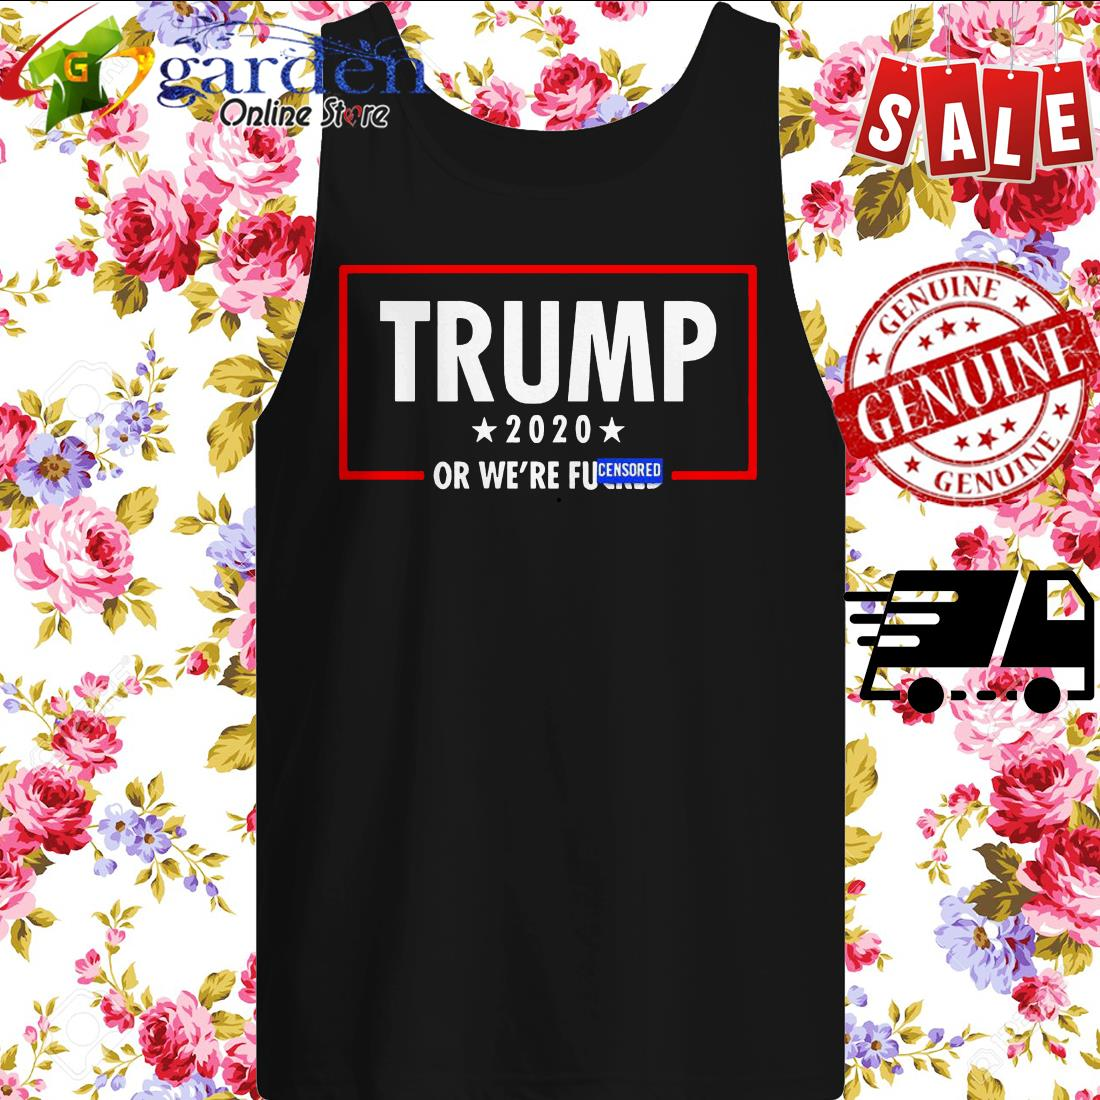 Trump 2020 Or We're Fucuked Censored tank top